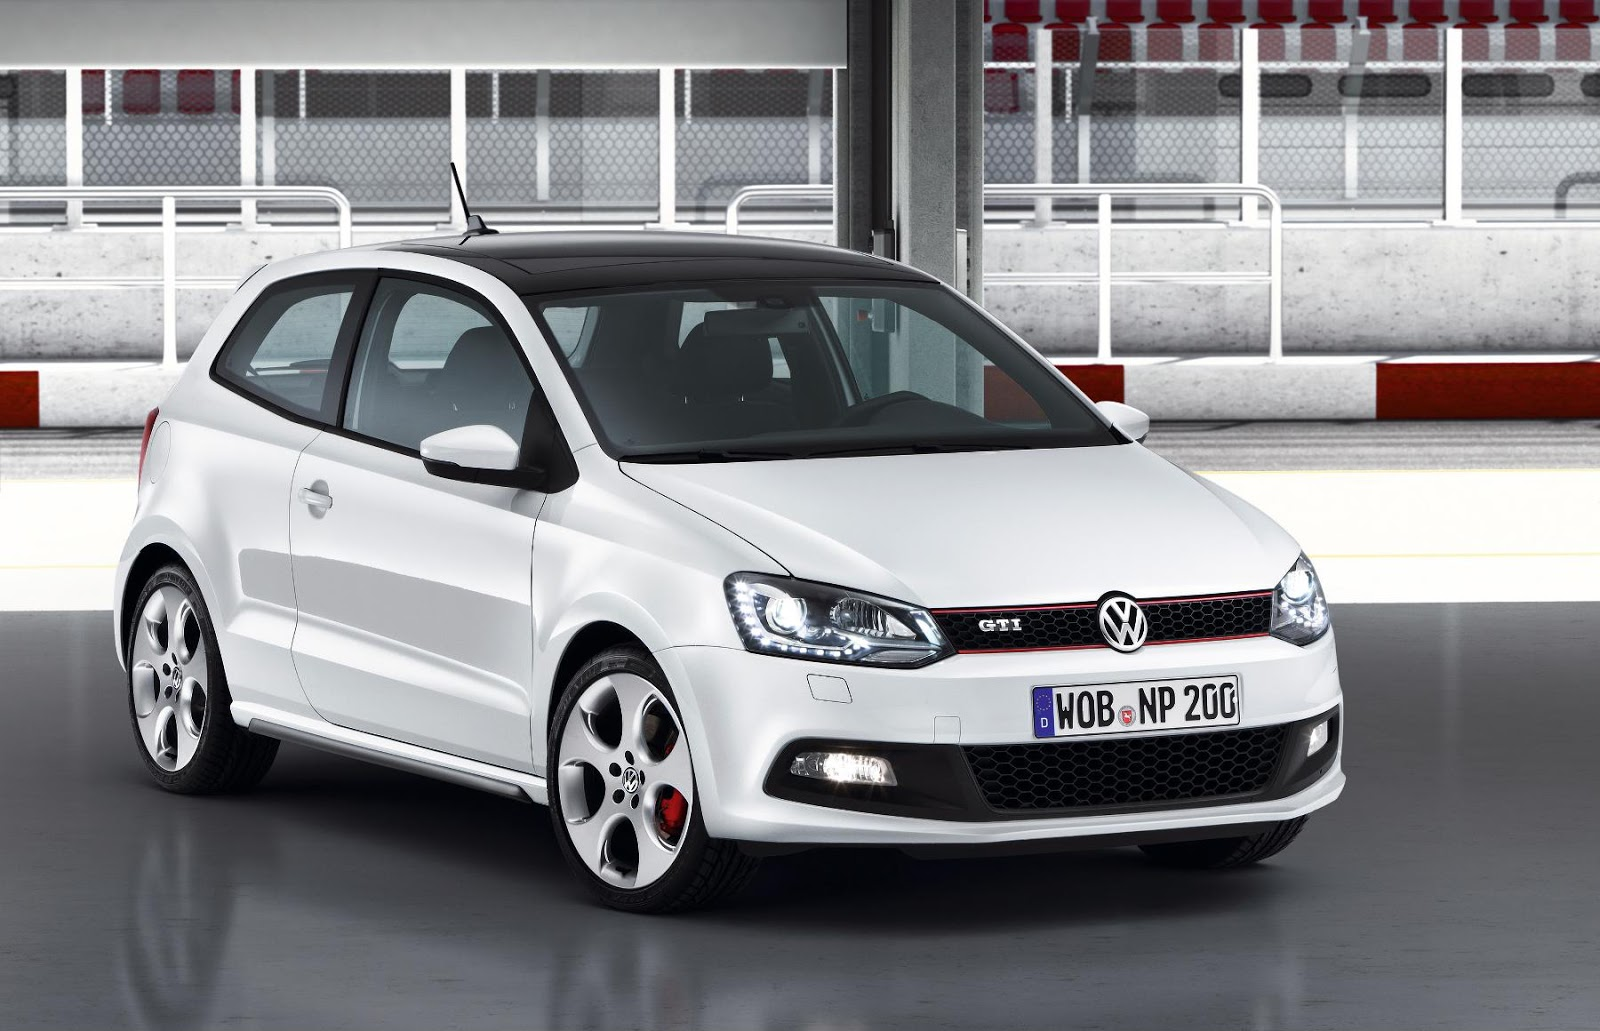 2013 volkswagen polo gti cars. Black Bedroom Furniture Sets. Home Design Ideas